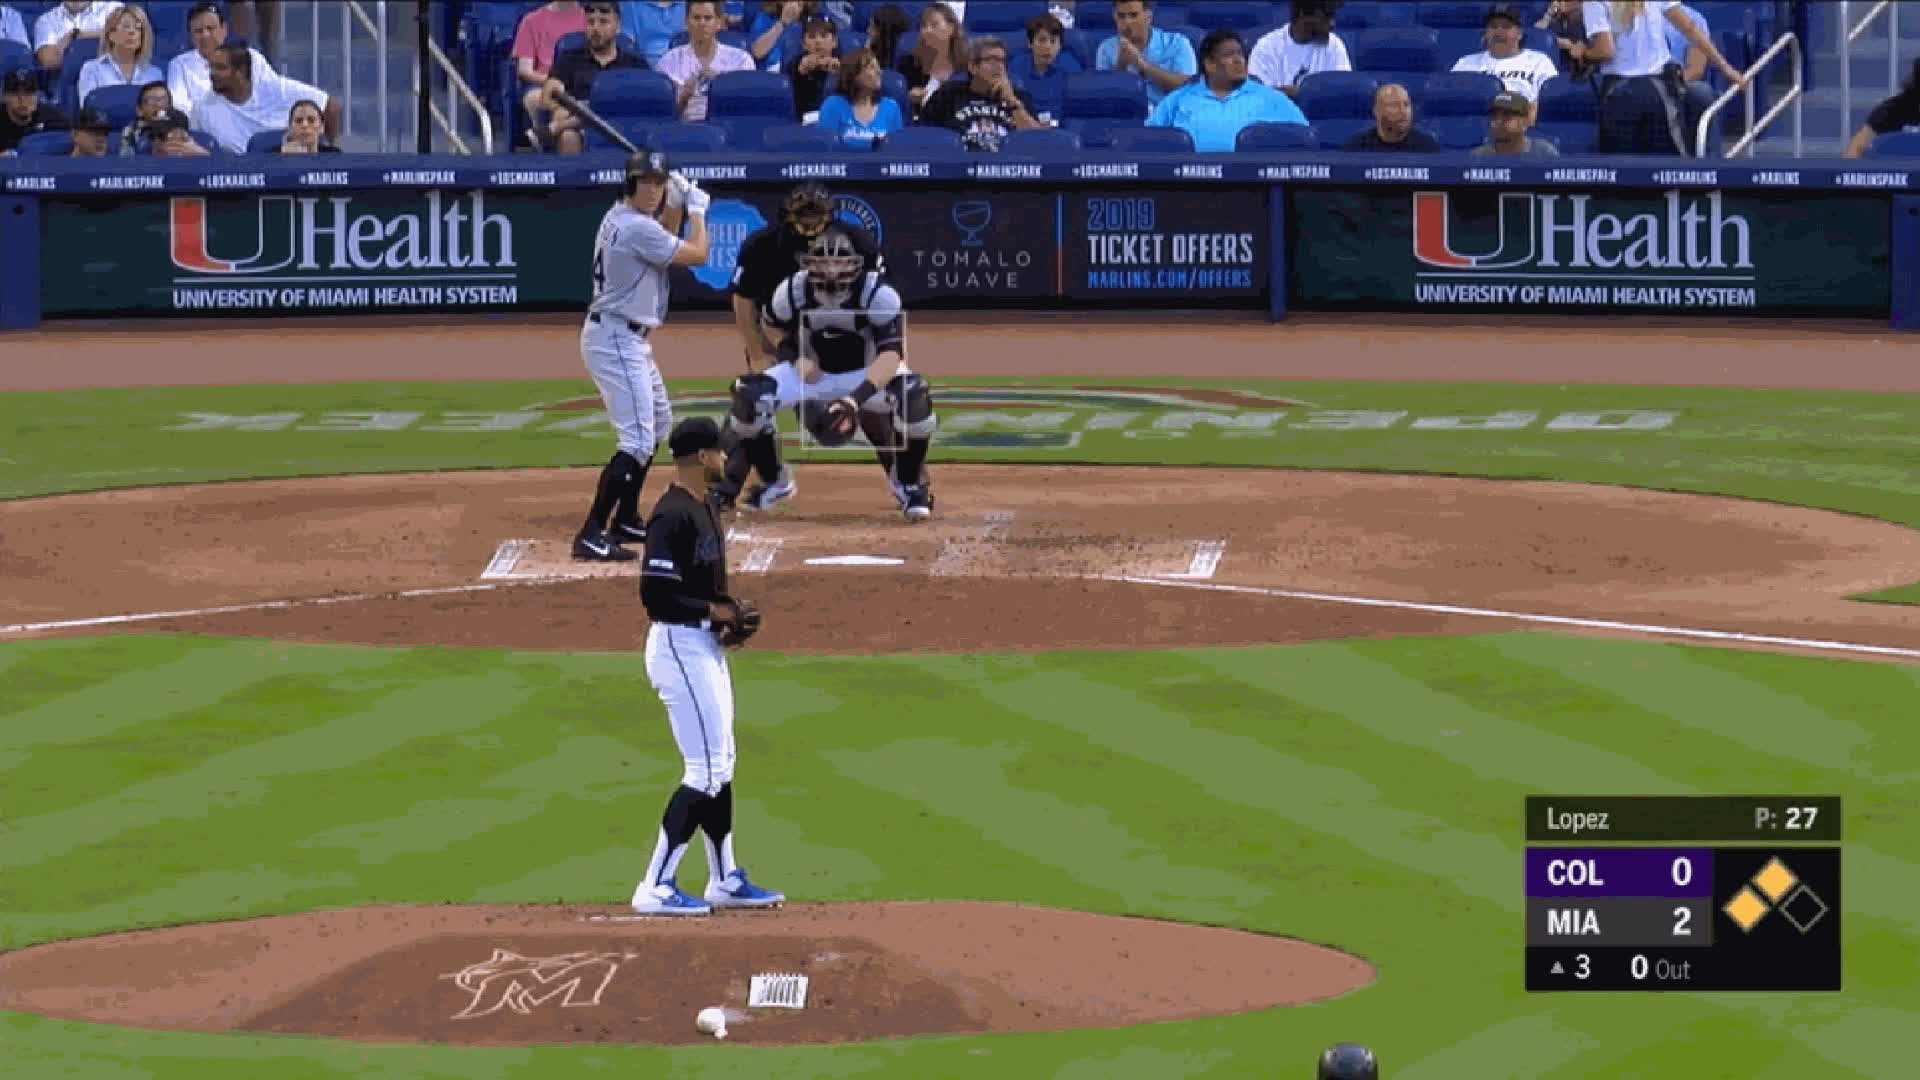 Colorado Rockies, Miami Marlins, baseball, Pablo Lopez-FB-b2bstrikesinside GIFs